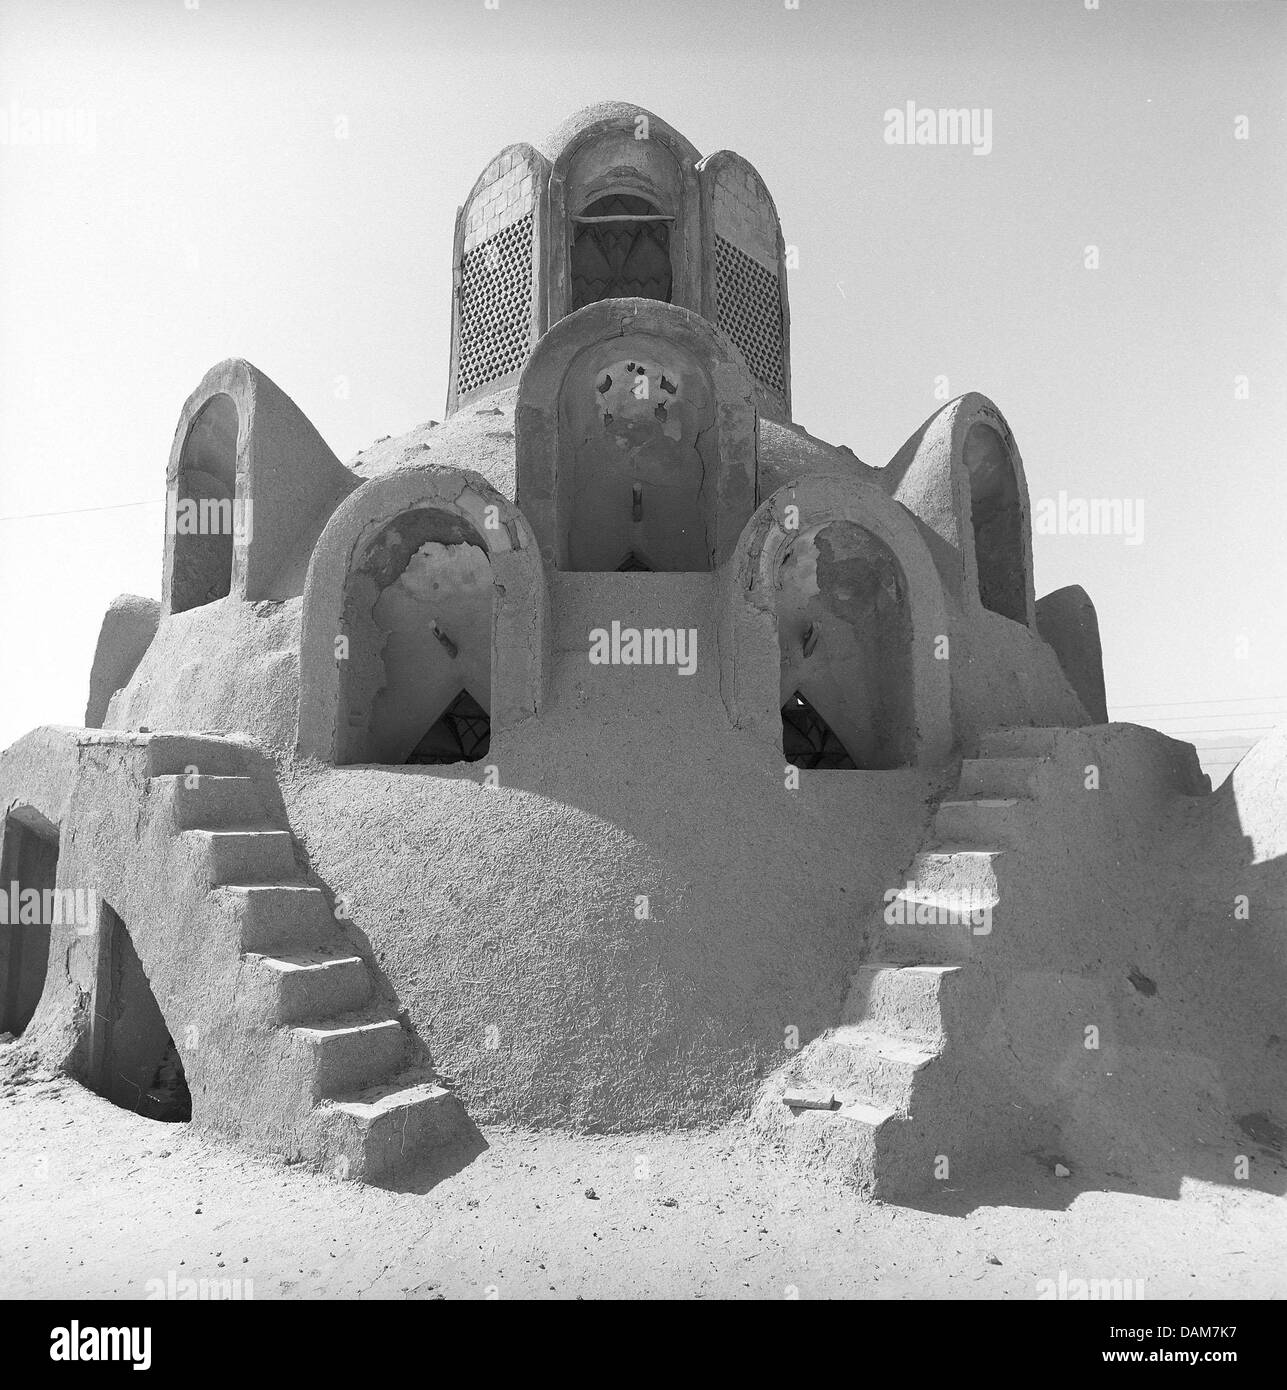 A photo of the series 'Desert Architecture' of Iranian photographer Bahman Jalali (1944-2010) is featured - Stock Image